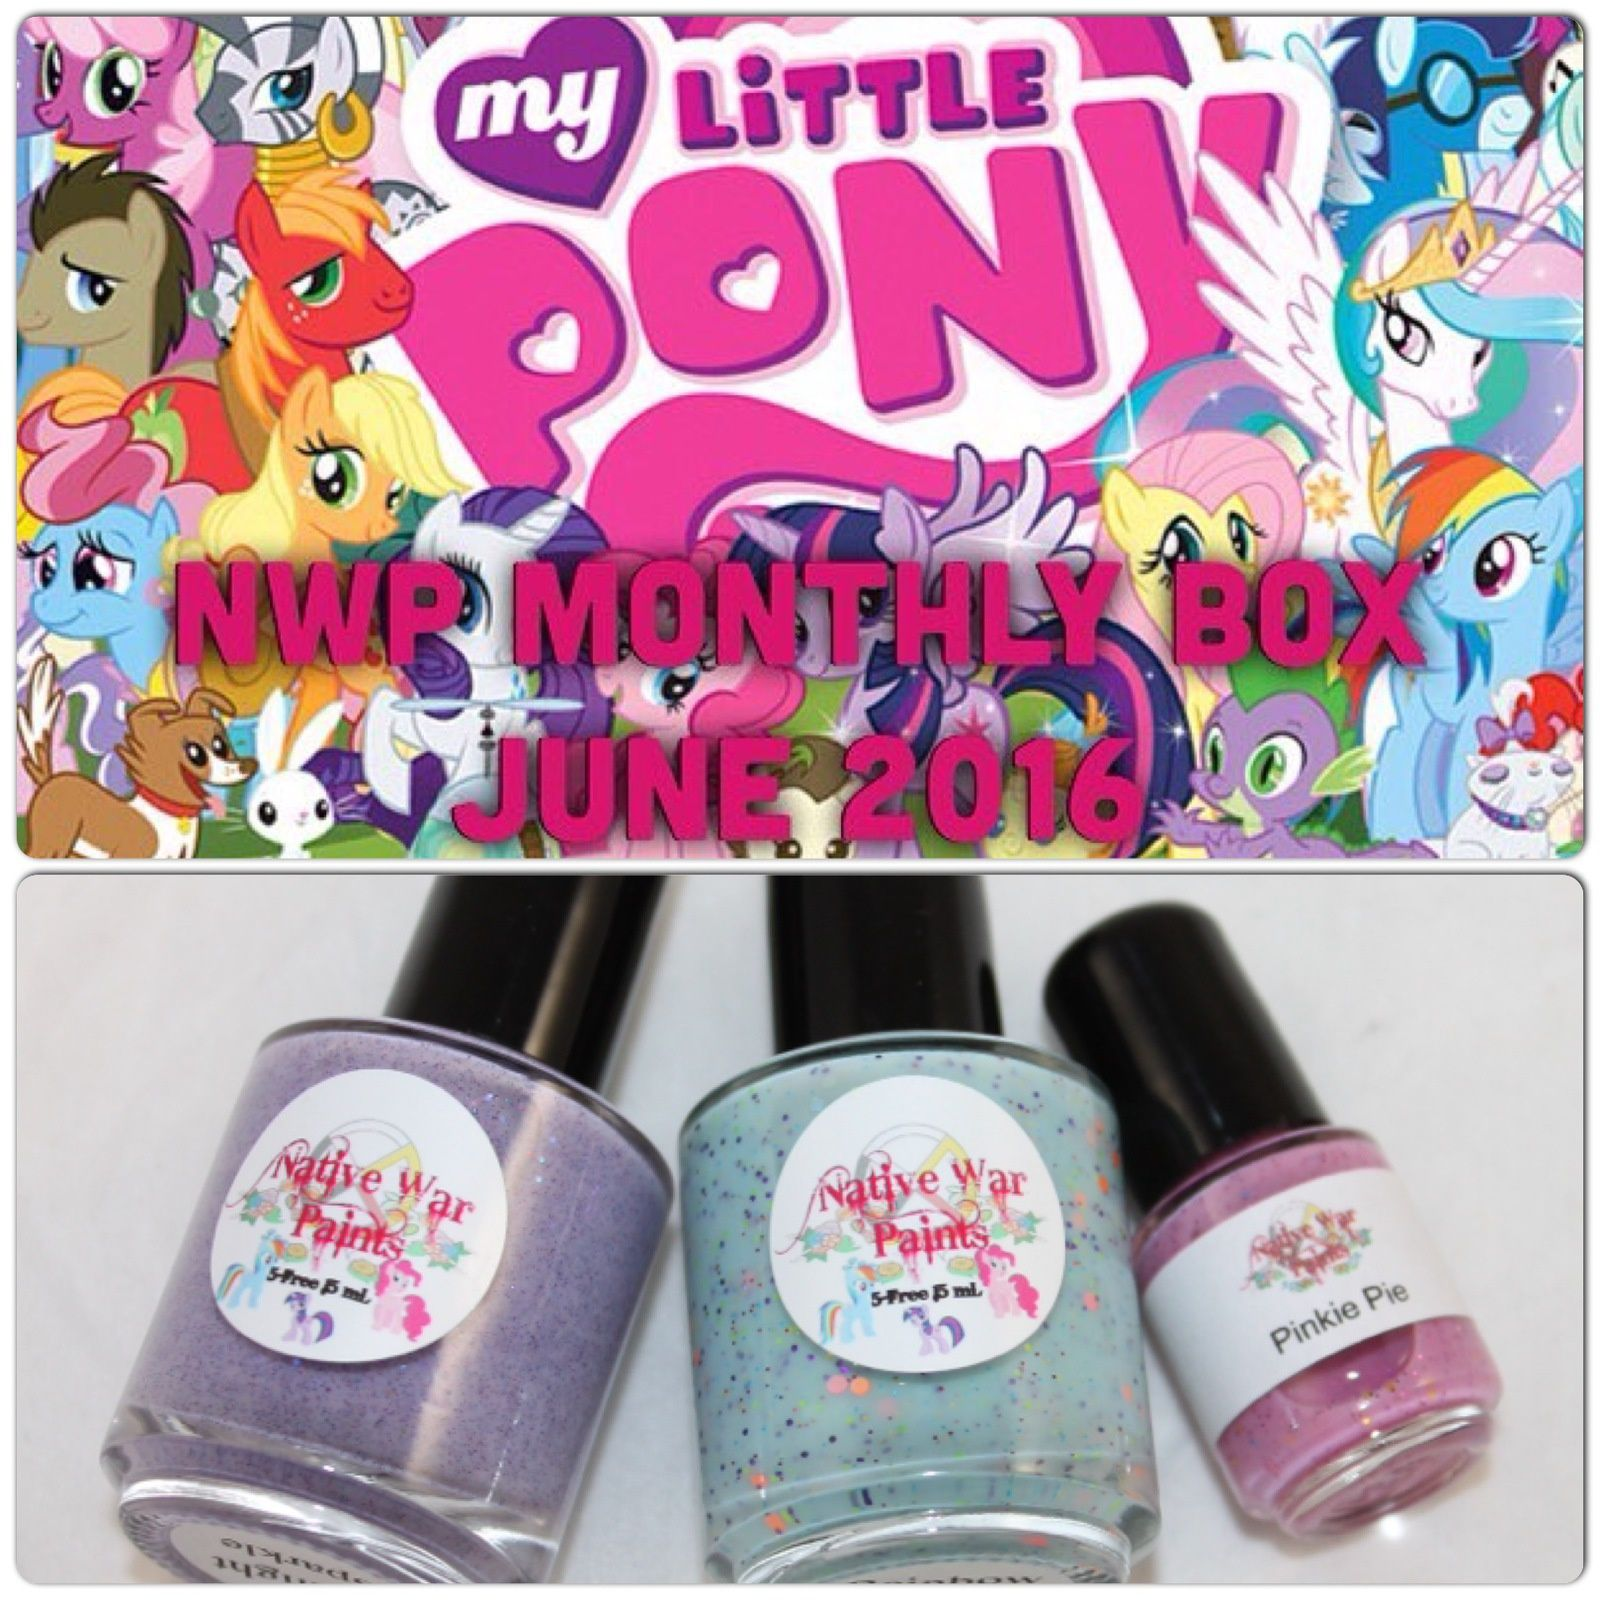 Native War Paints Monthly Box - June 2016 - My Little Pony